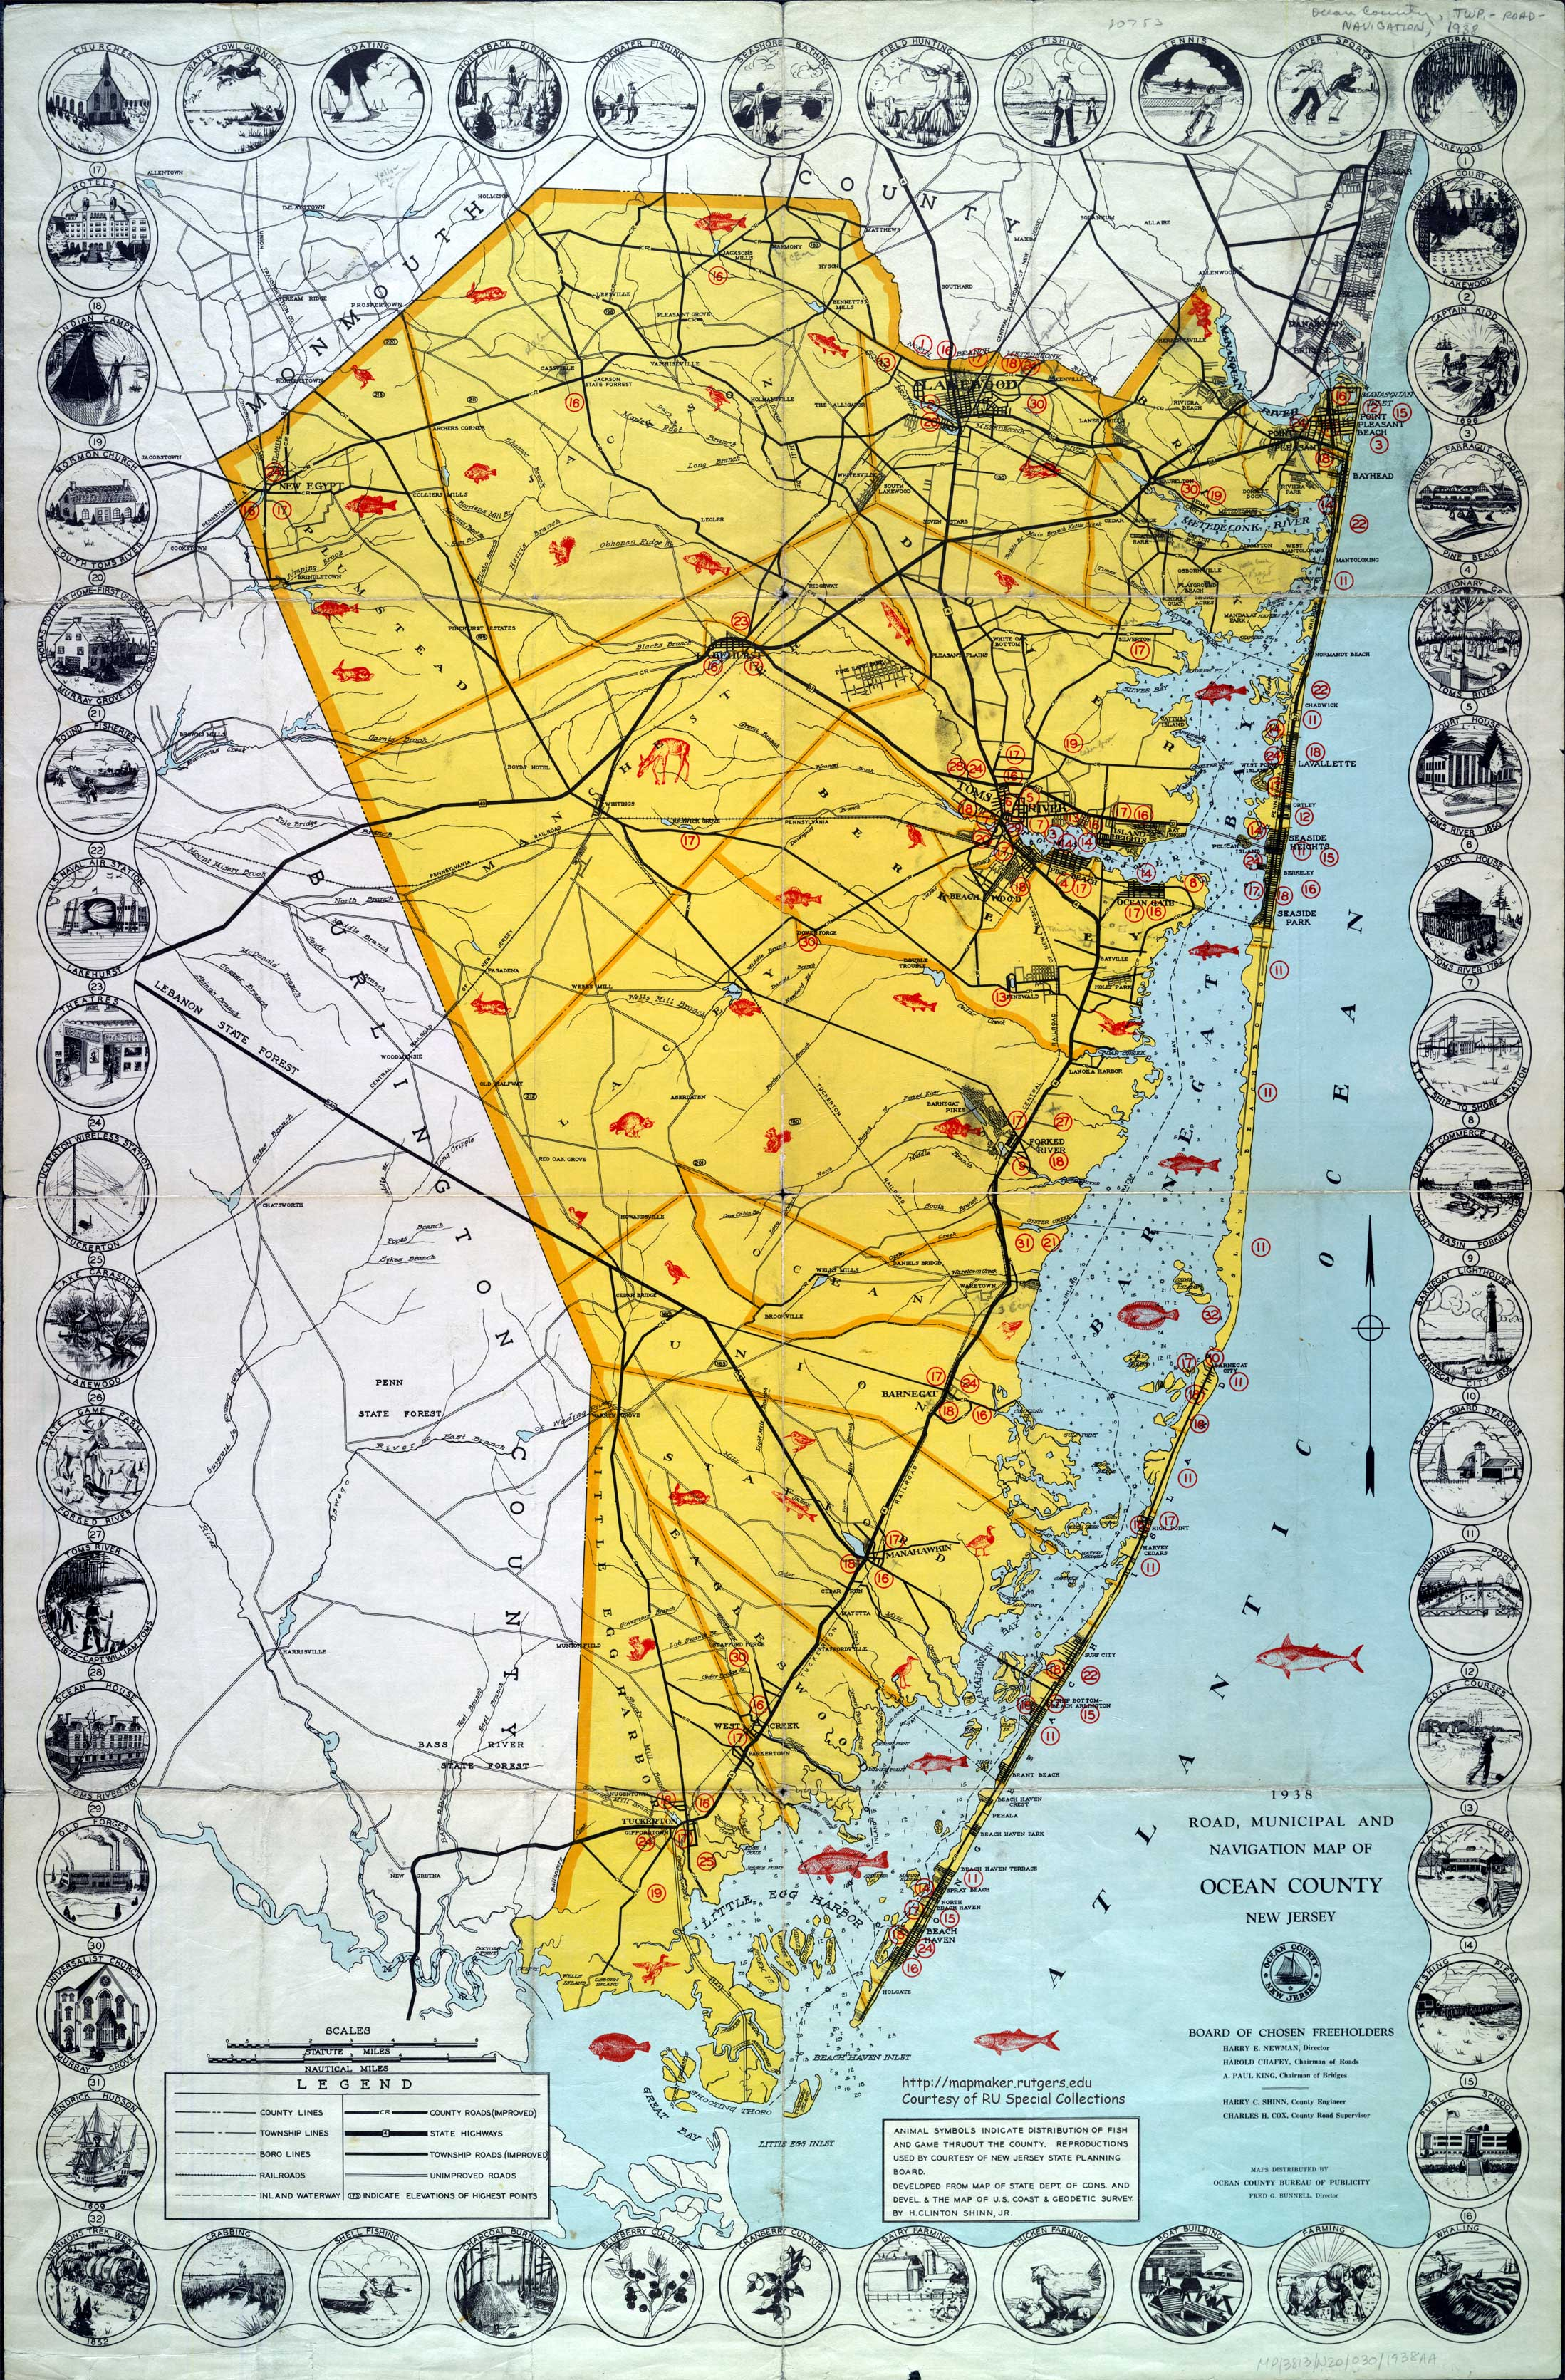 Historical Ocean County New Jersey Maps